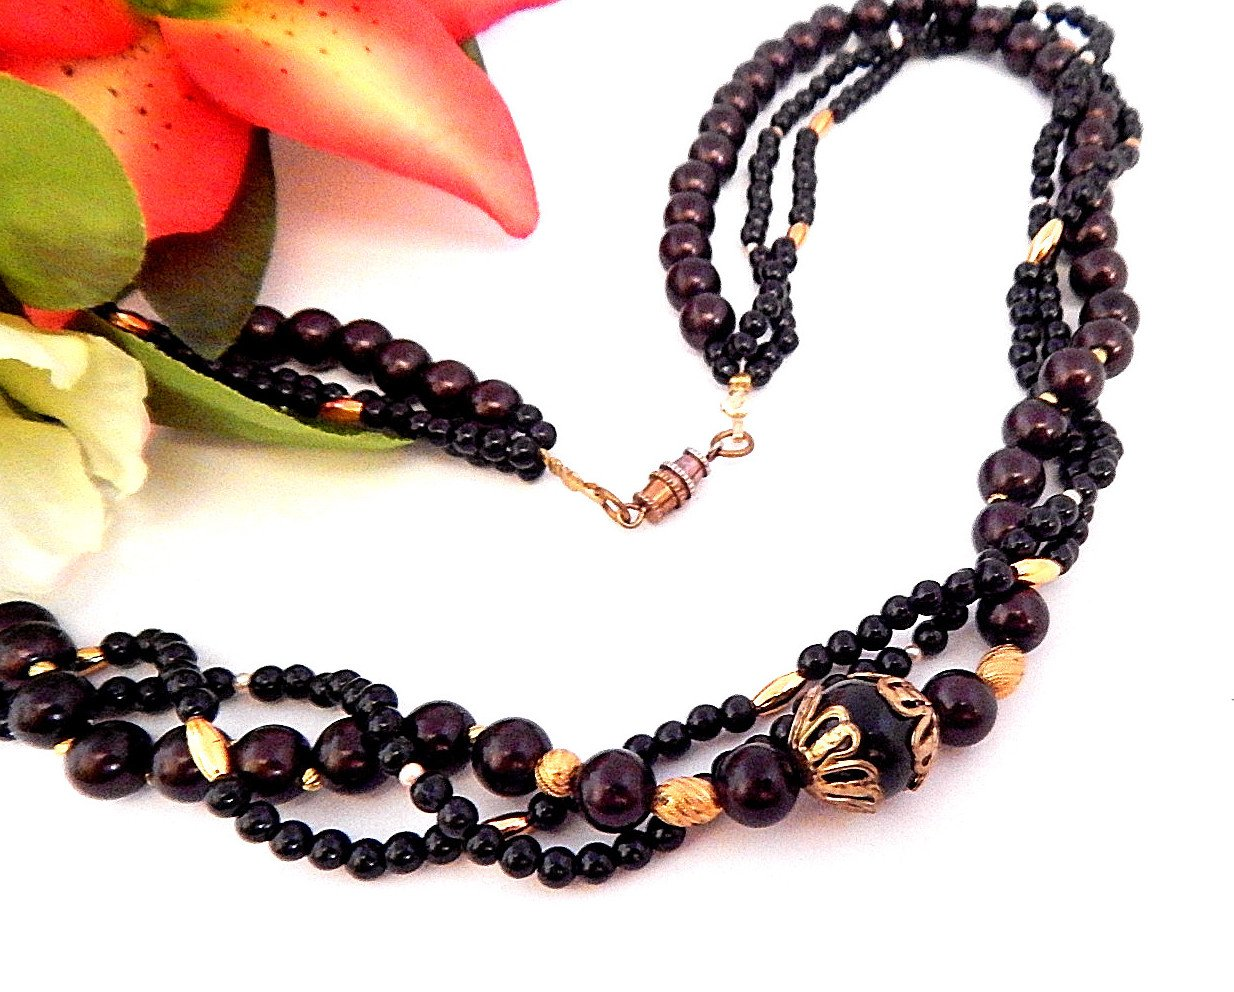 """Beaded Necklace 24"""" Three Strand Black Brown and Gold Beads Vintage 1970s Fashion Jewelry"""